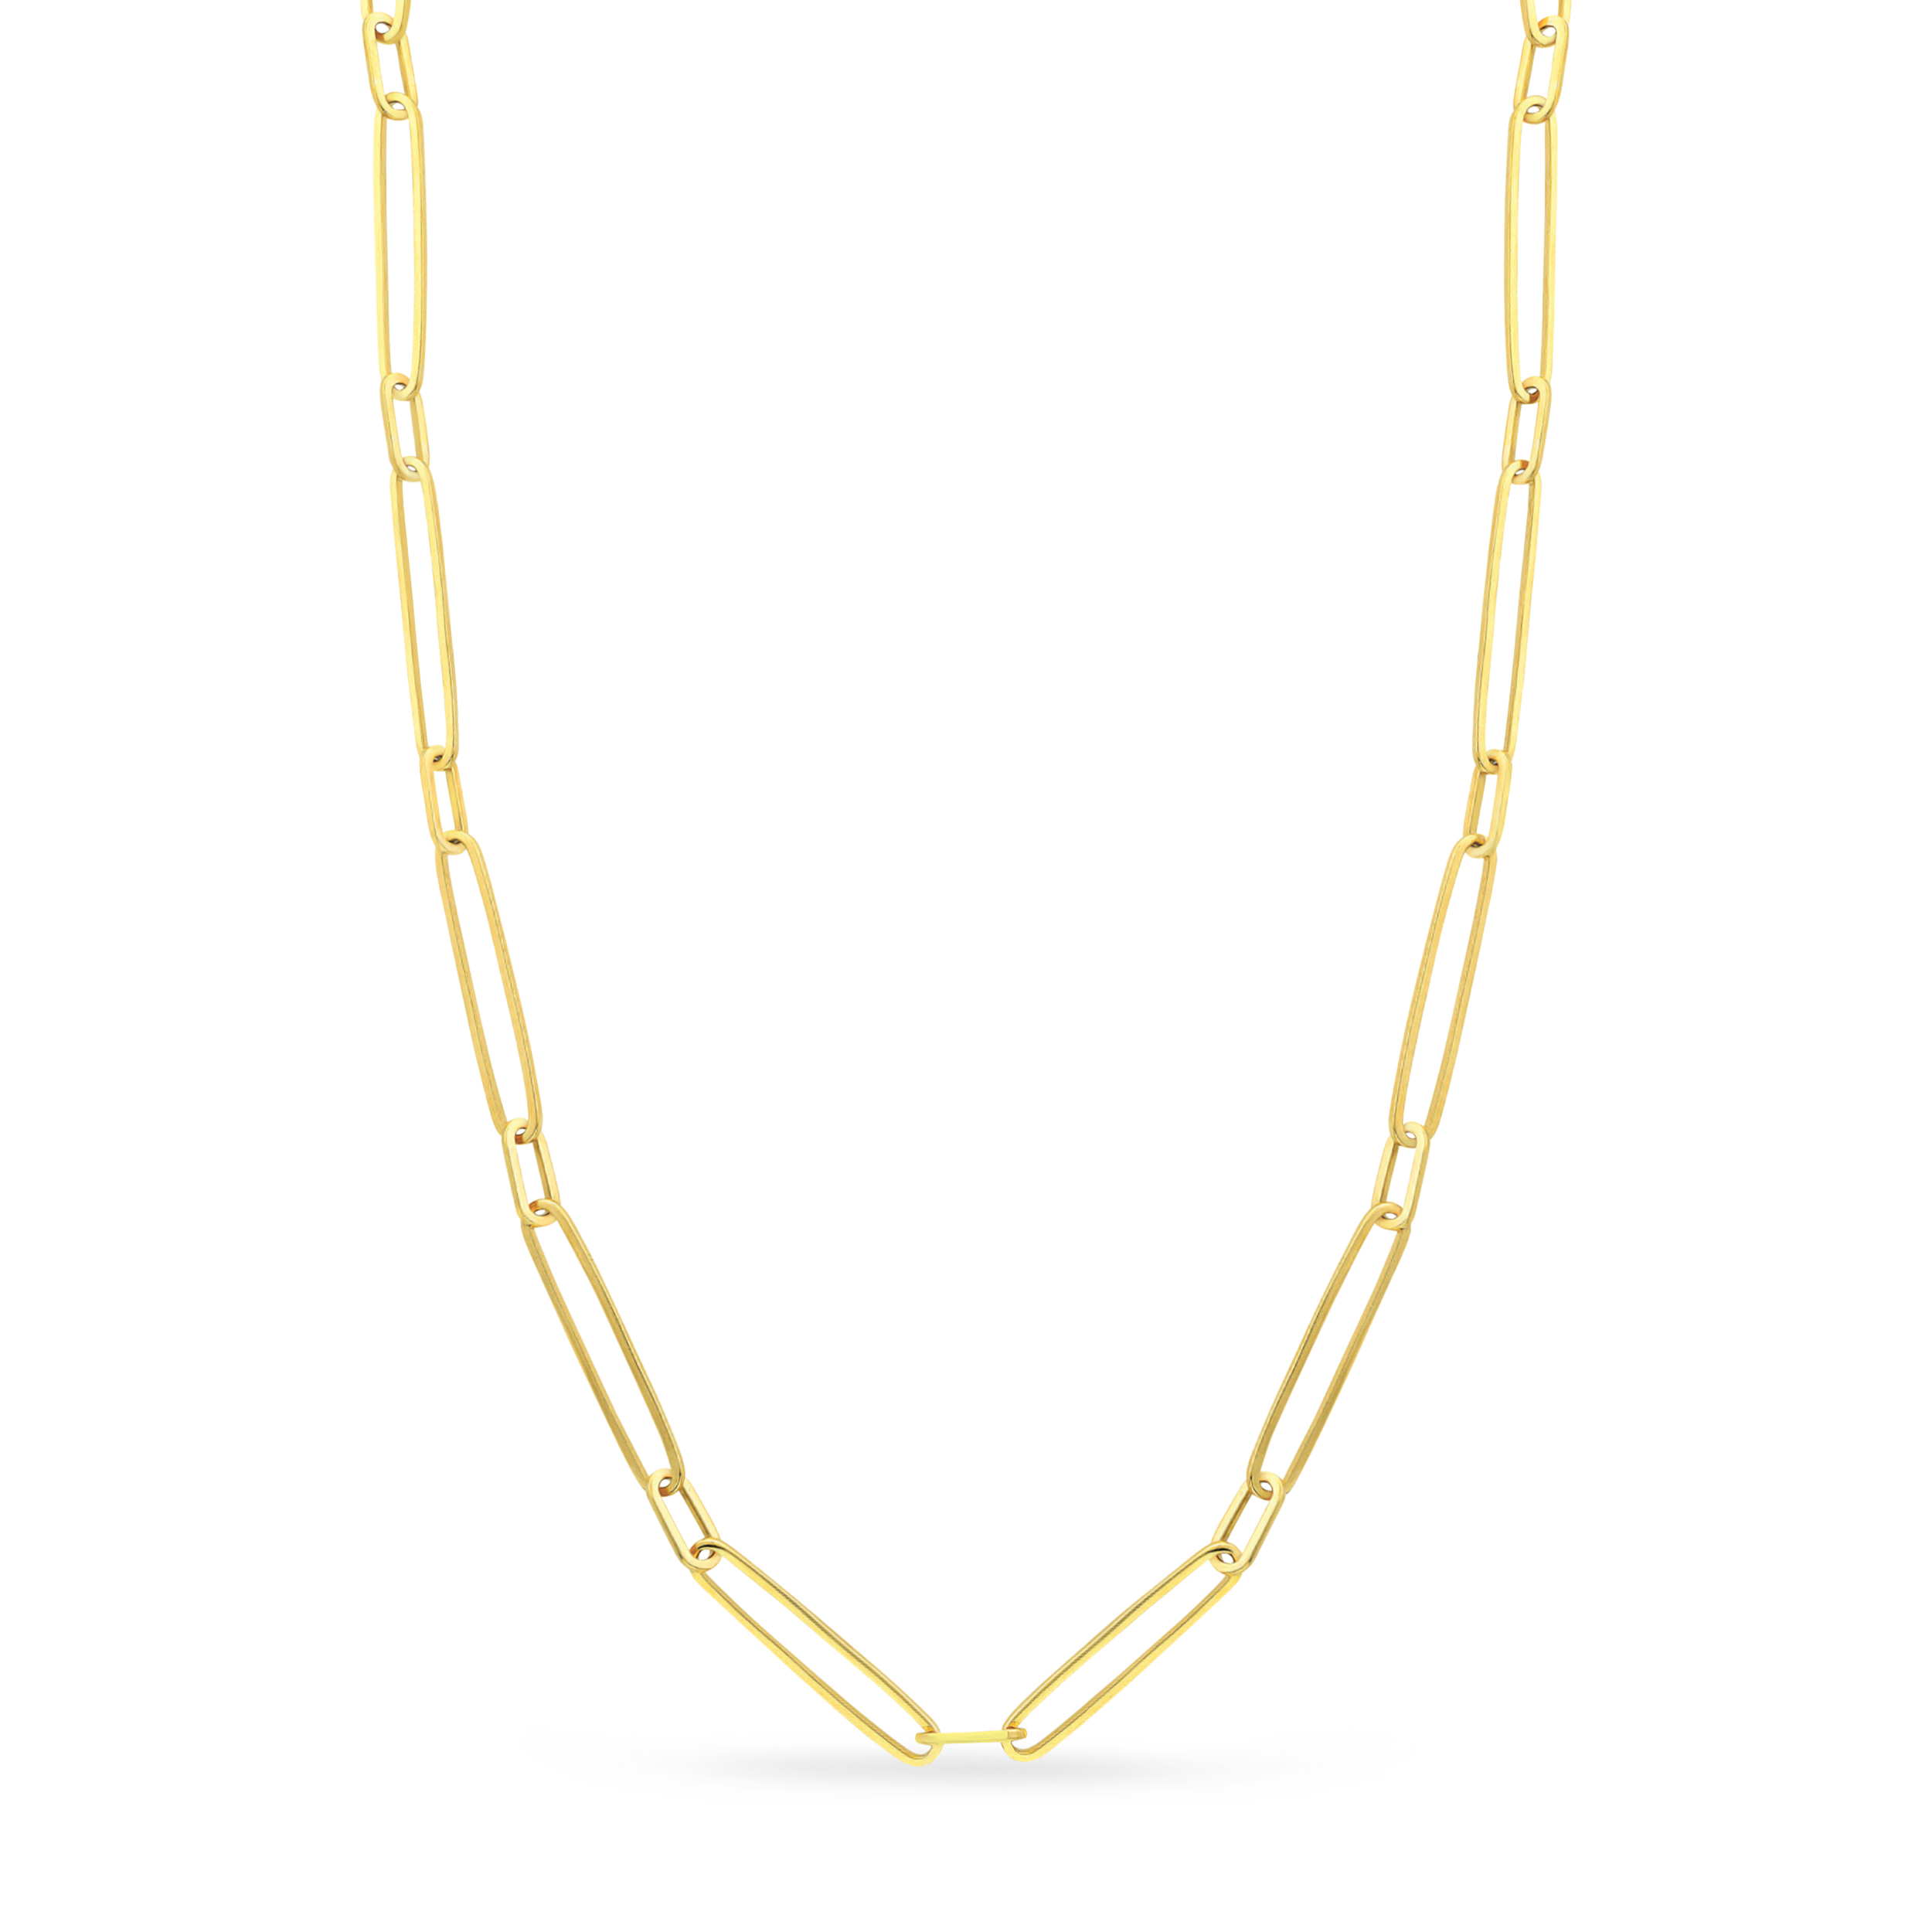 Paperclip Chain Necklace With Lobster Lock 14k Yellow Gold